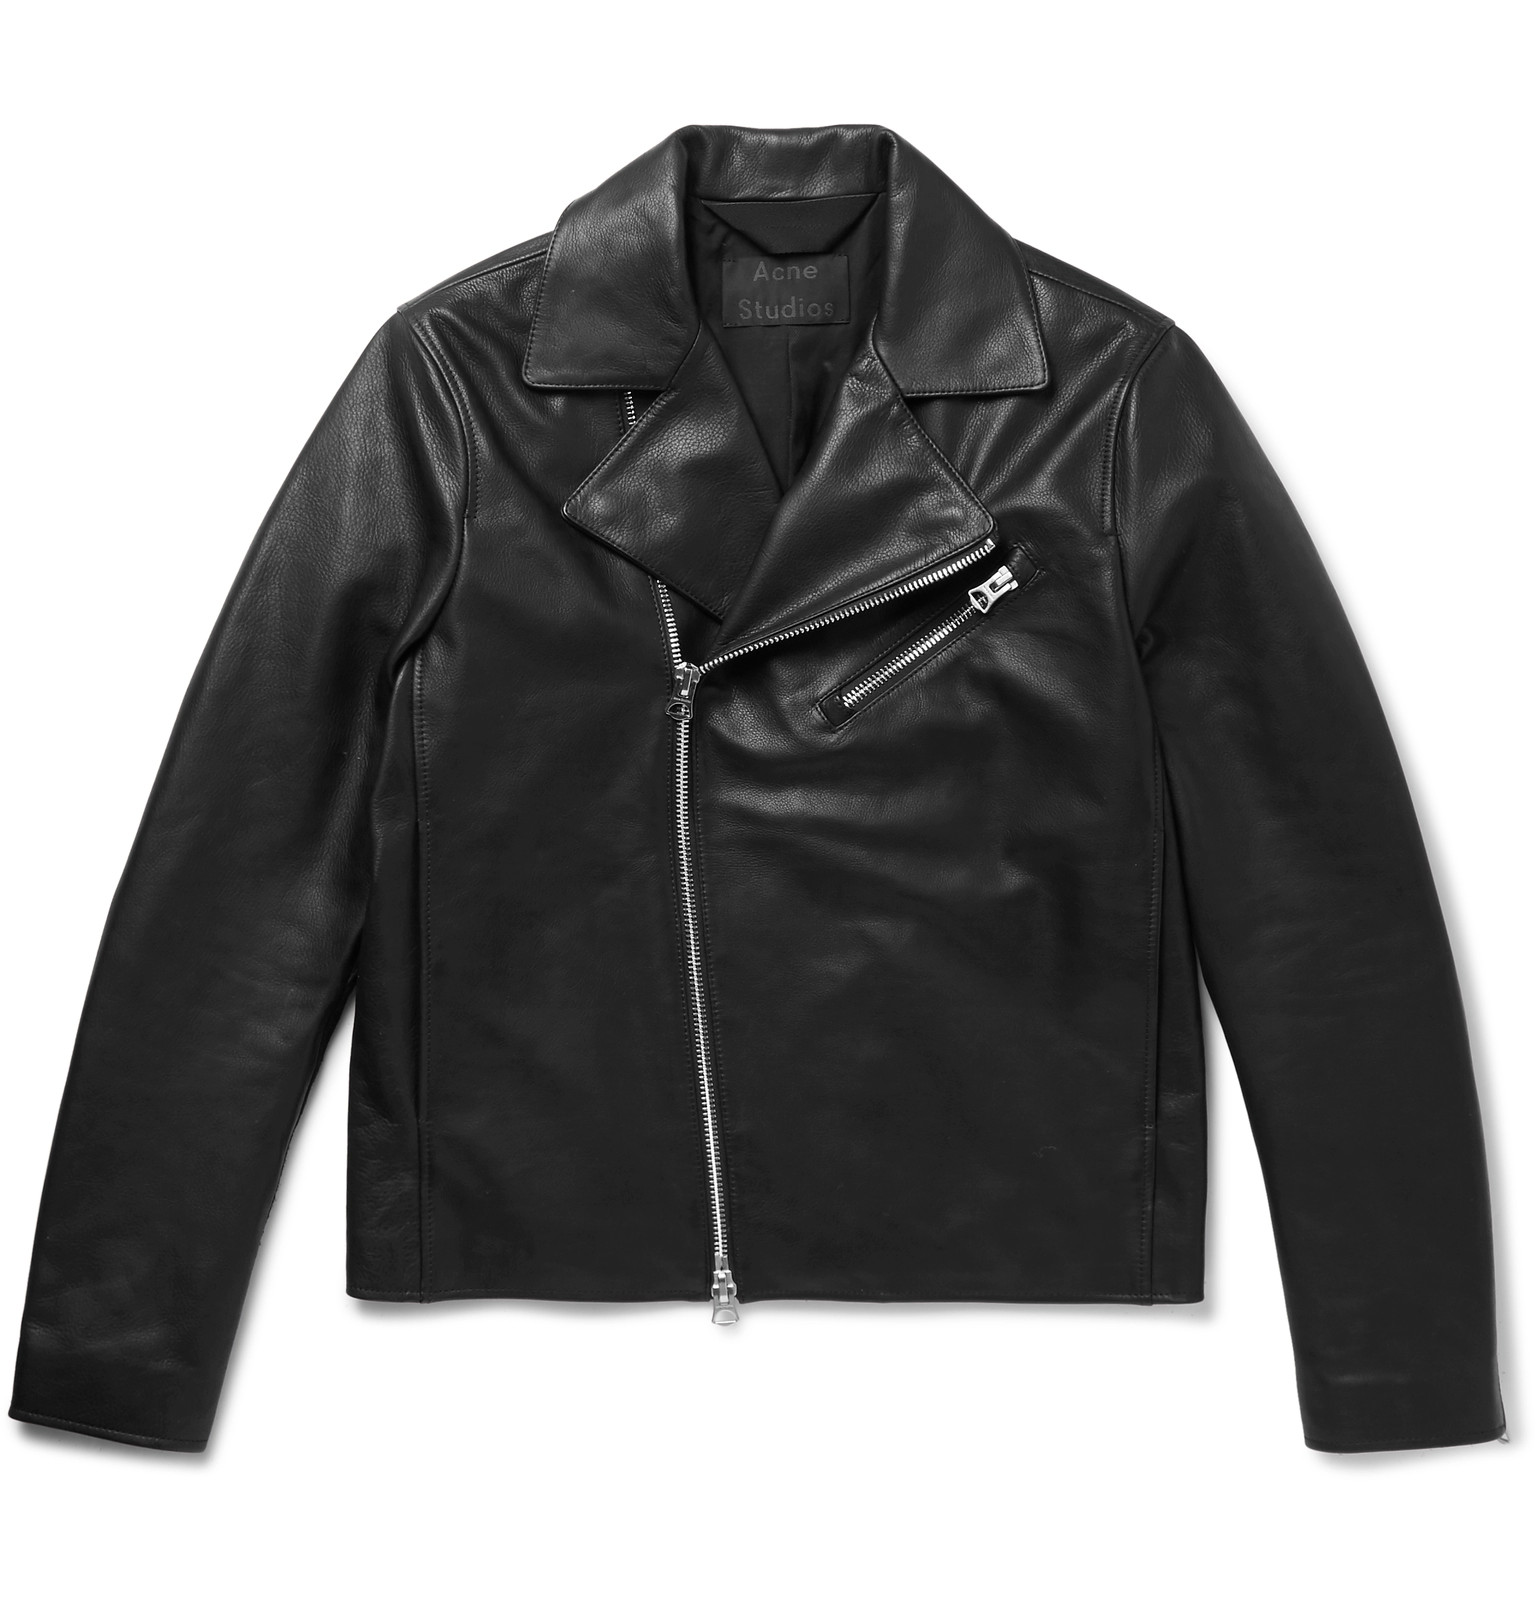 leather jackets acne studios - axl slim-fit suede-panelled leather jacket LXYINGY